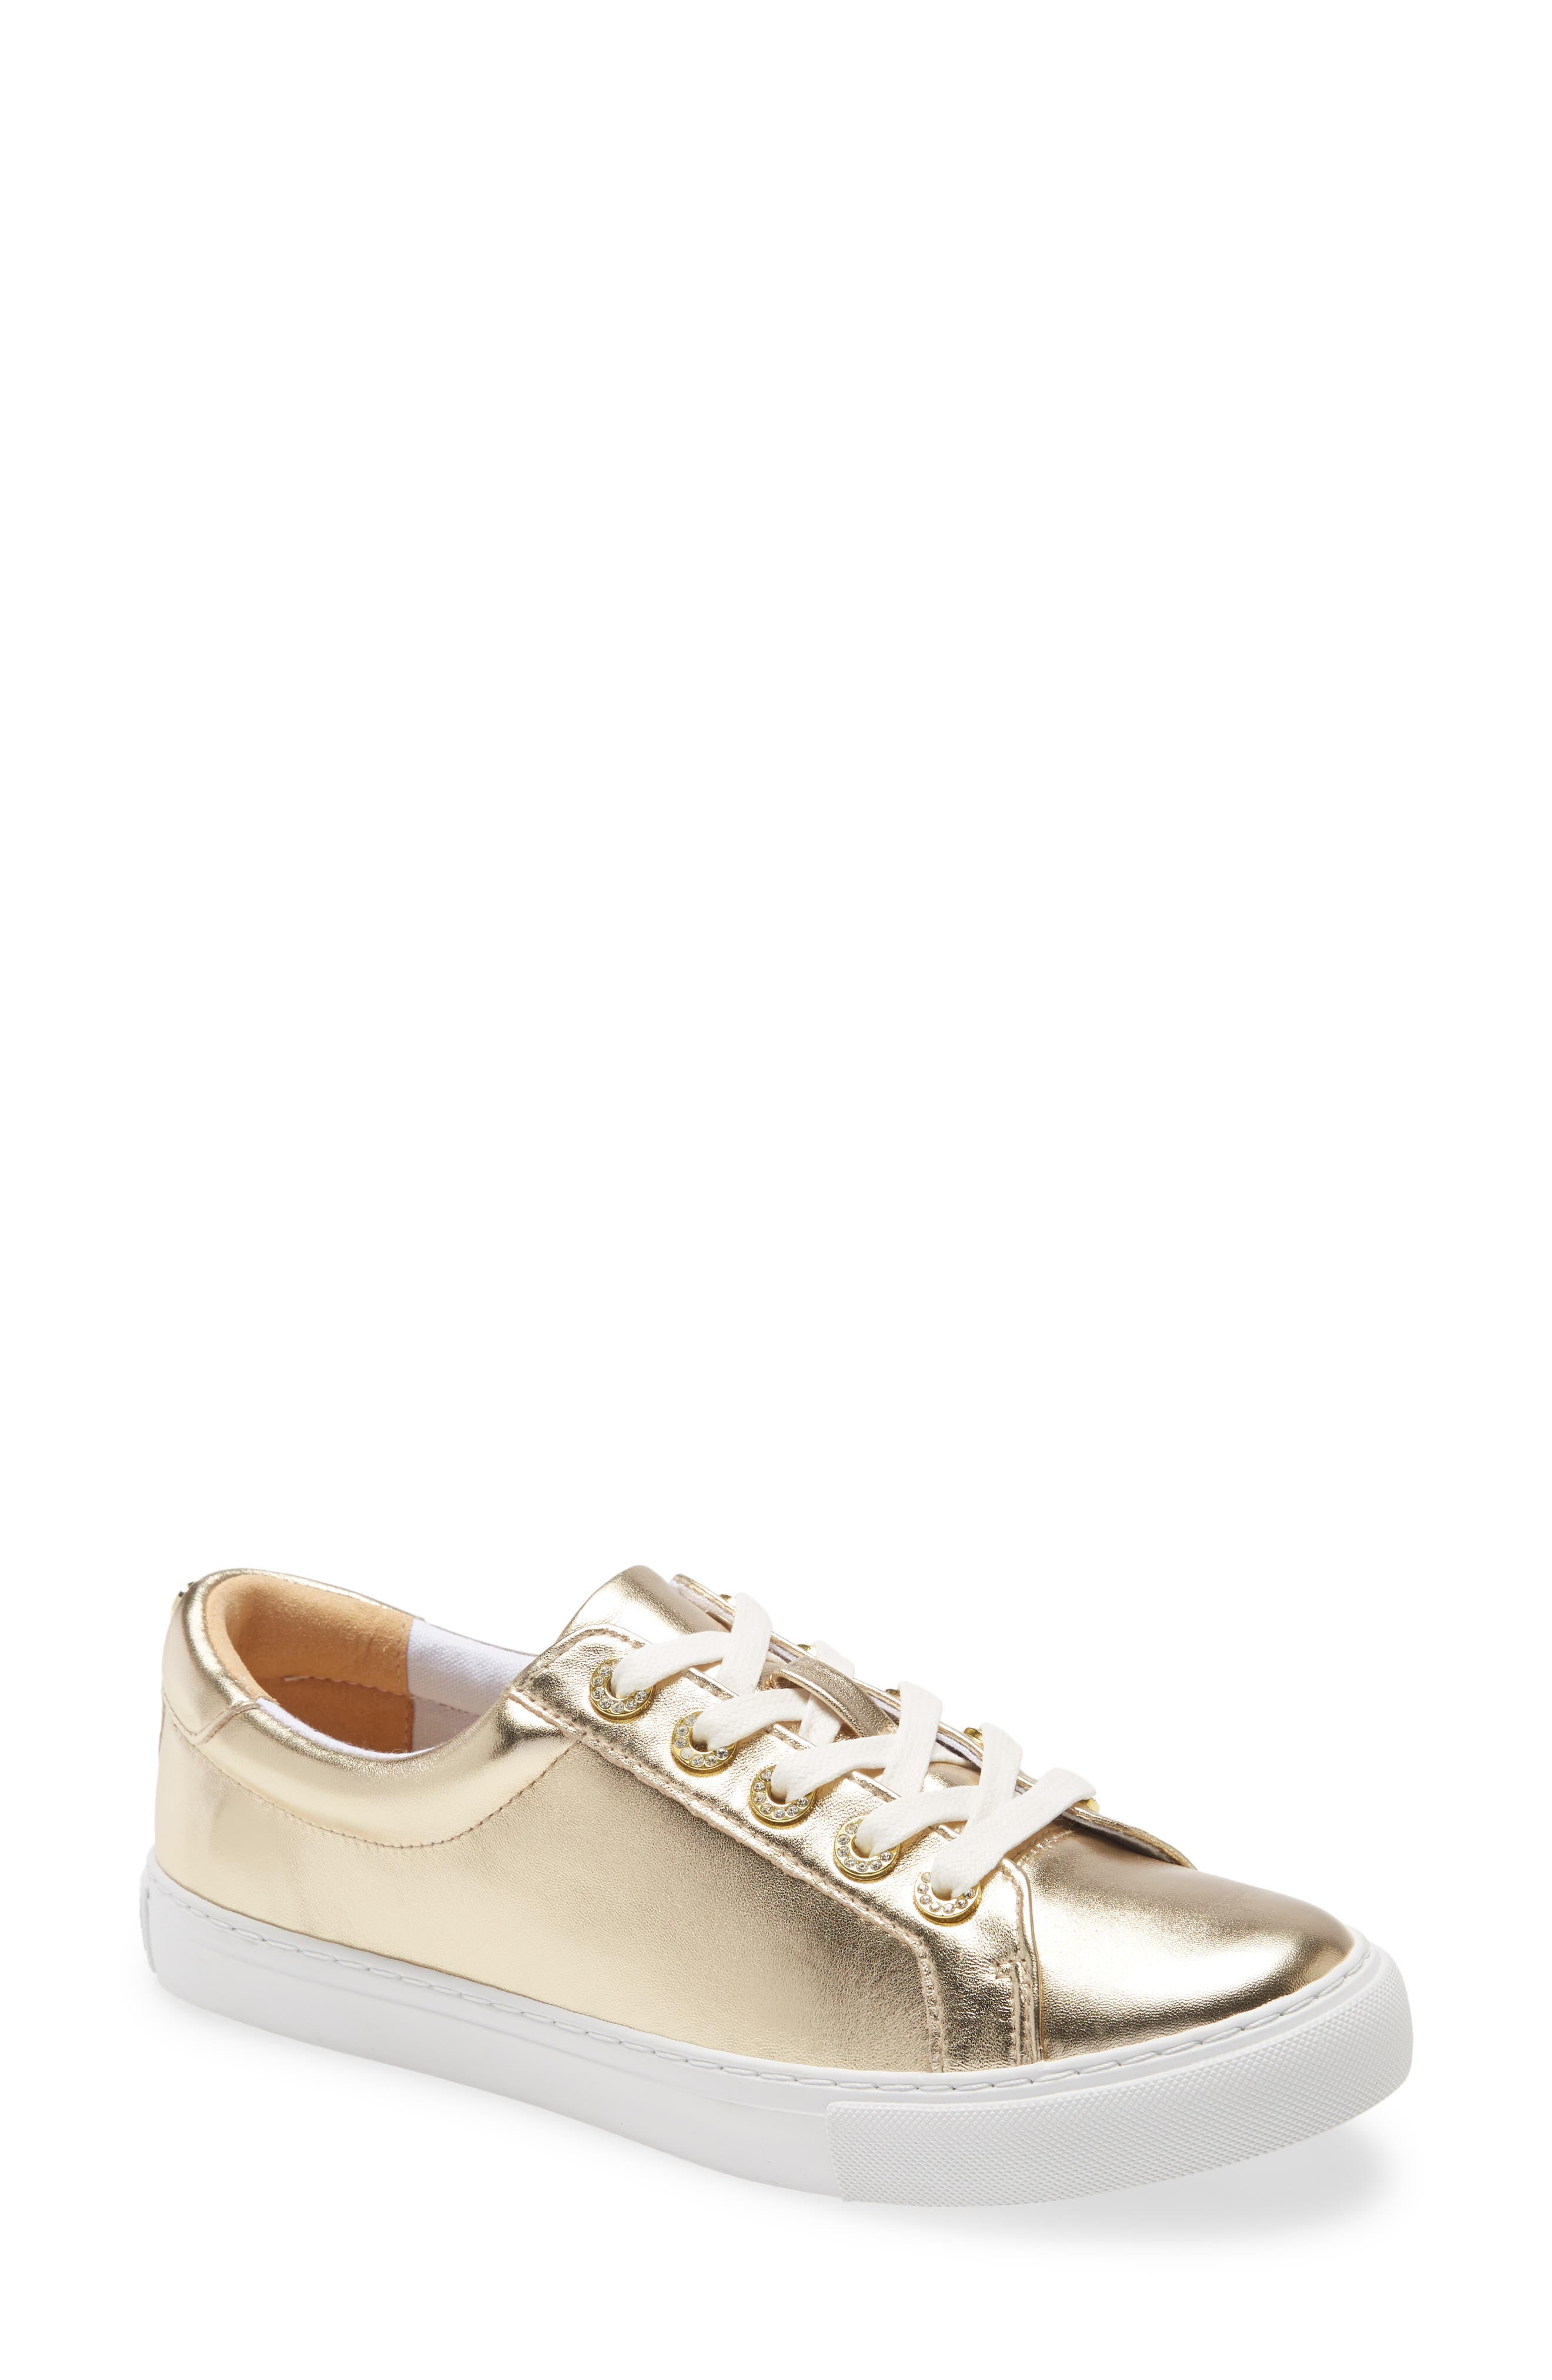 Lilly\\\'s casual glamour extends to your footwear in these tennis-white lace-ups accented by rhinestone eyelets and a glint of gold at the heel. Style Name: Lilly Pulitzer Lux Hallie Sneaker (Women). Style Number: 6043772. Available in stores.